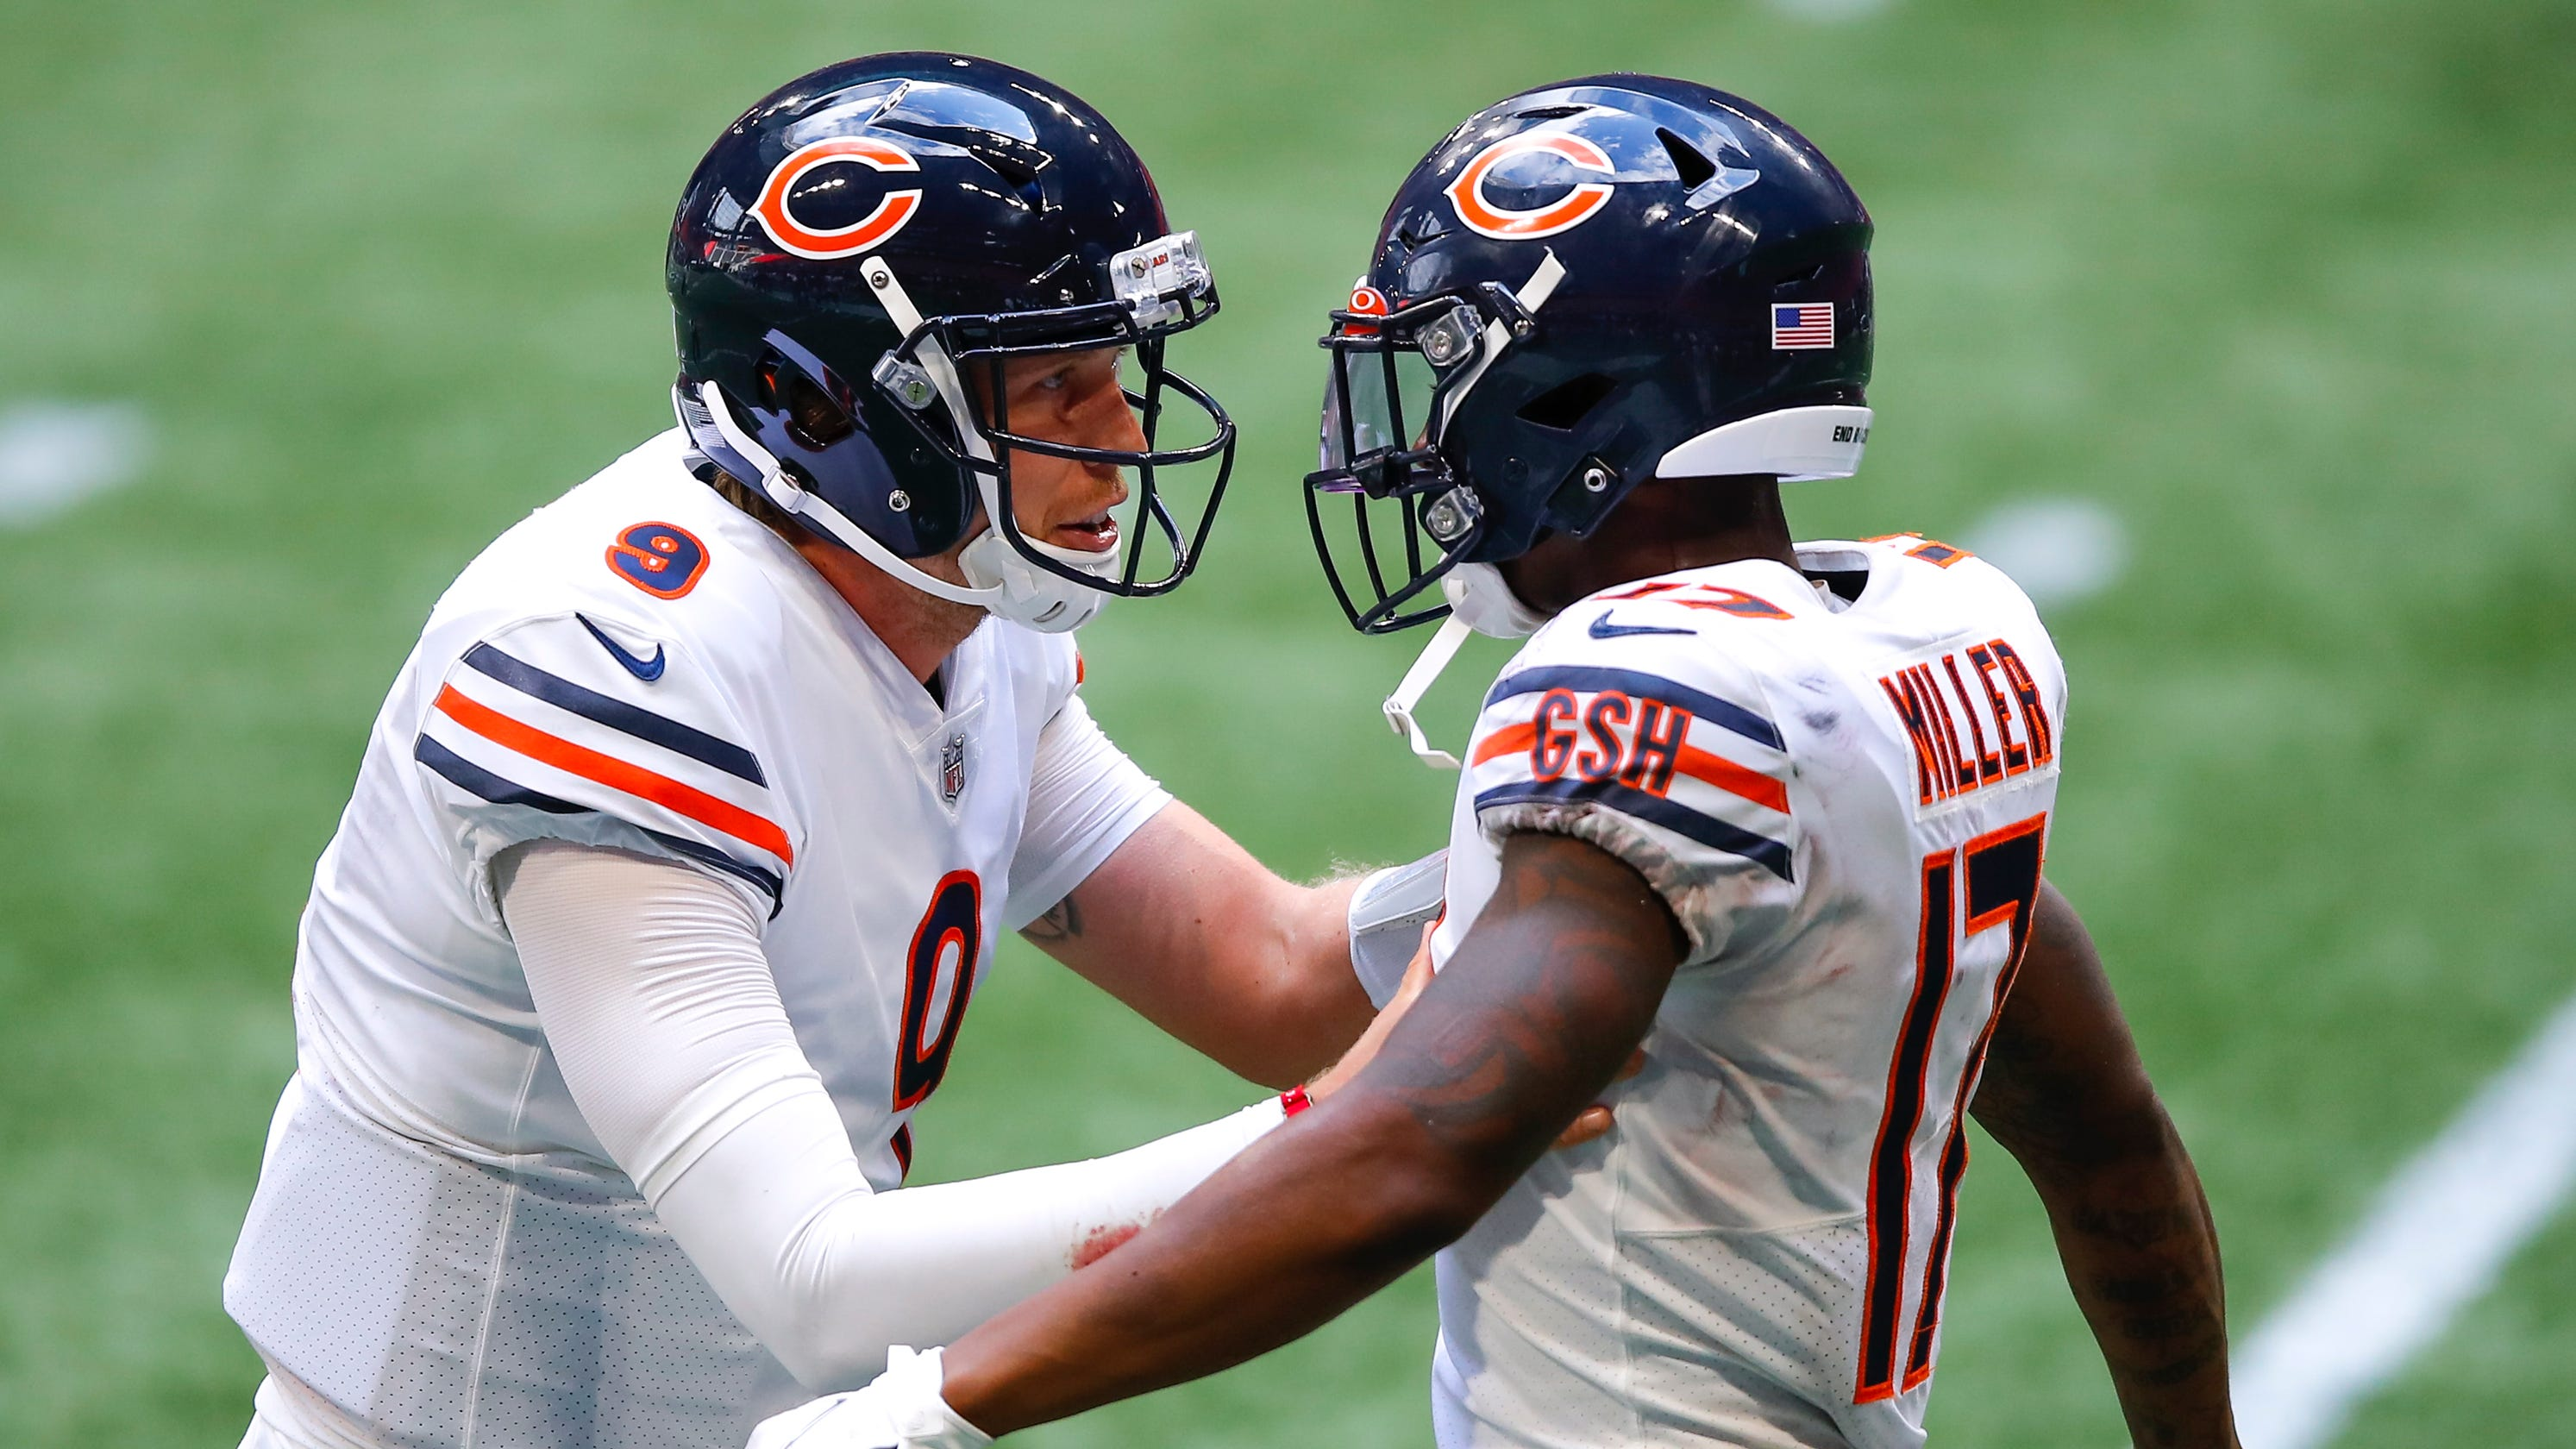 Nick Foles takes over as Chicago Bears' starting quarterback as Mitchell Trubisky heads to bench